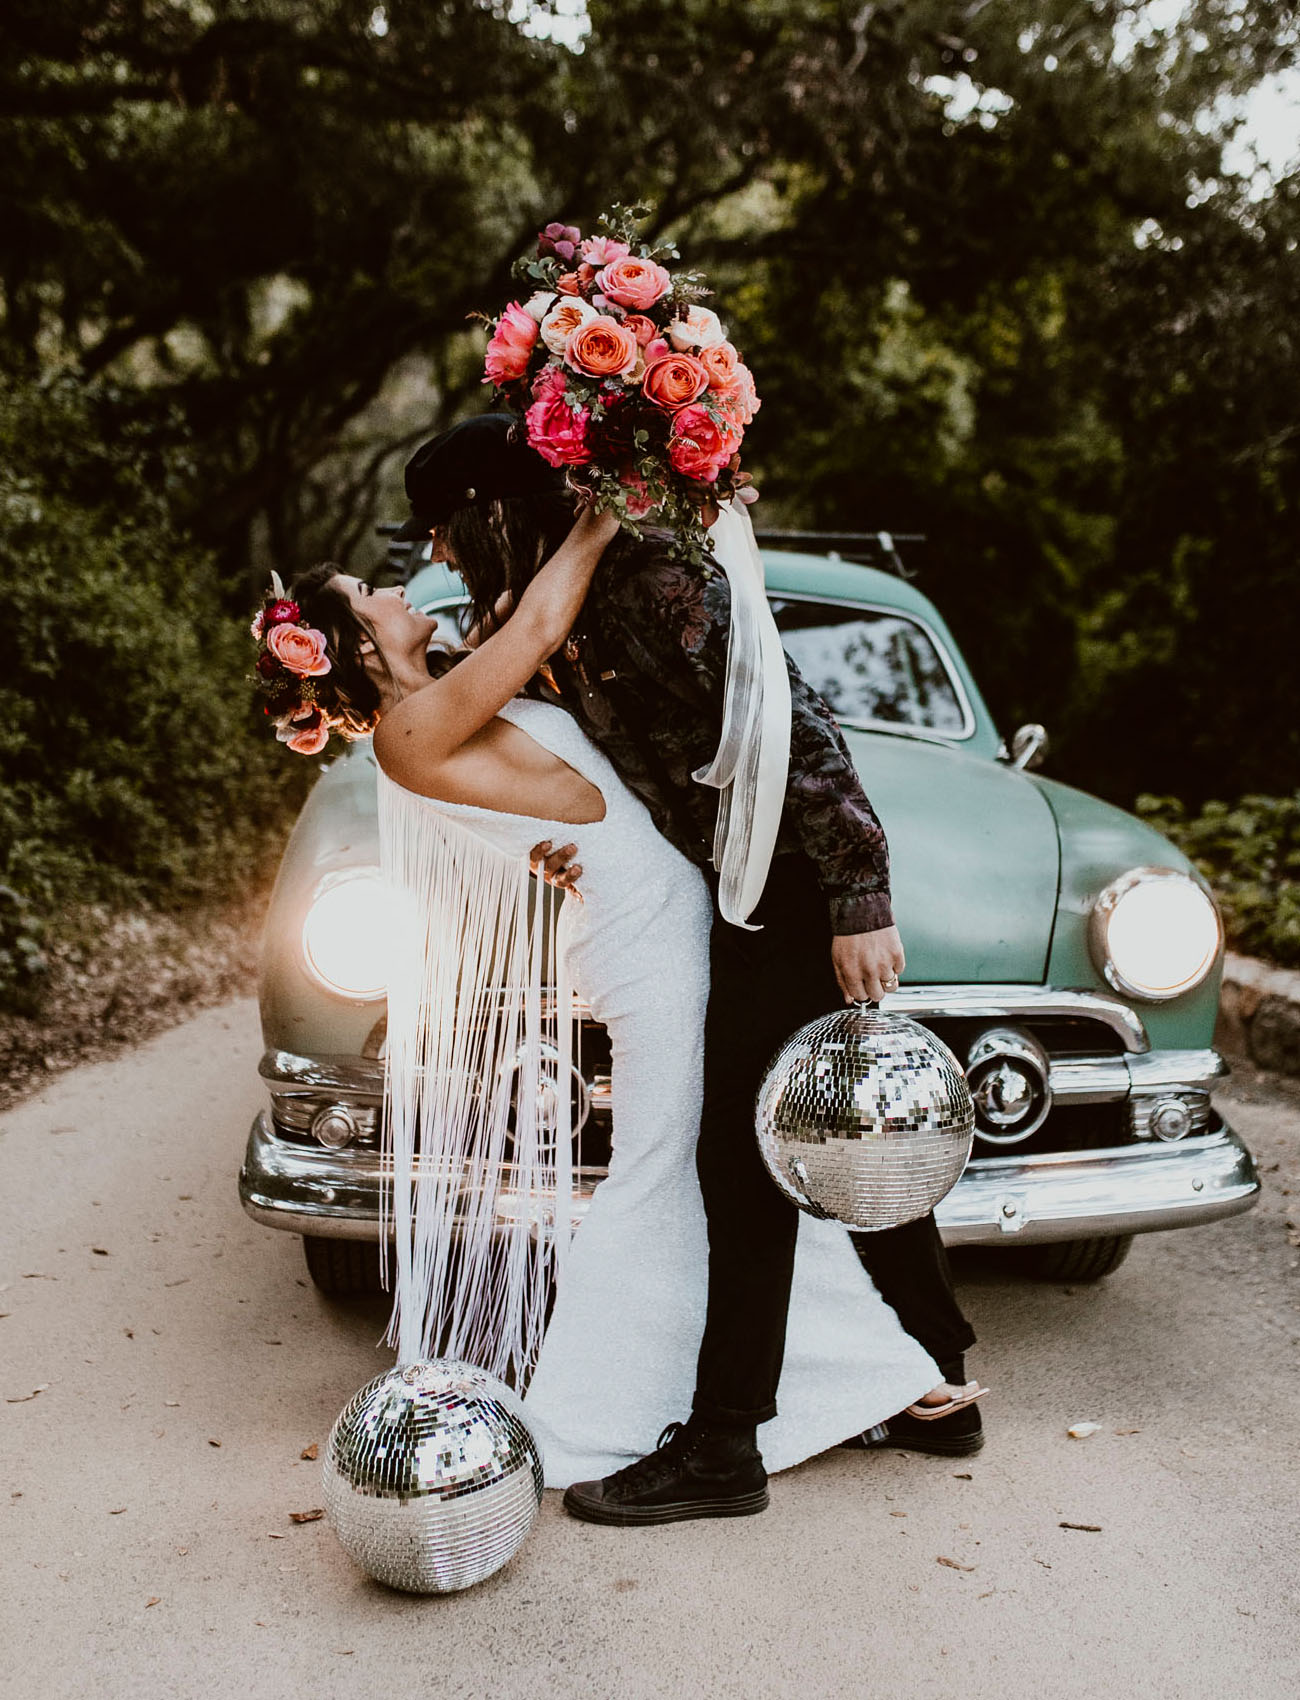 fe136835a1550 Rock n' Roll Princess Marries Her Musician in this DIY Boho Wedding ...